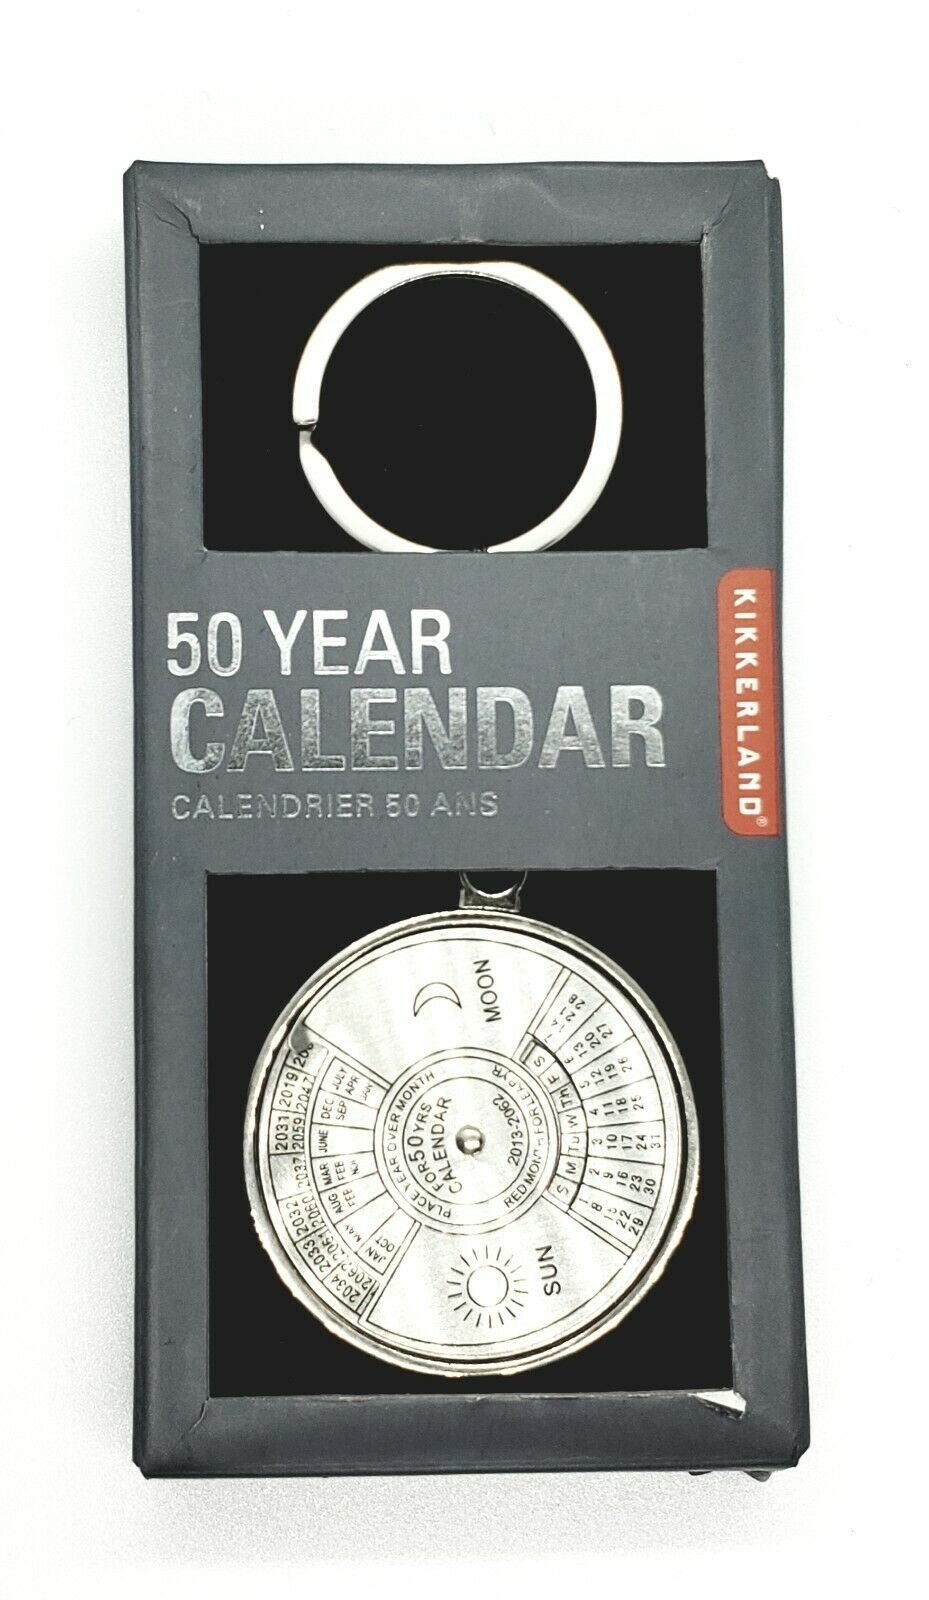 50 Year Calendar Key Chain Ringkikkerland - Brand New